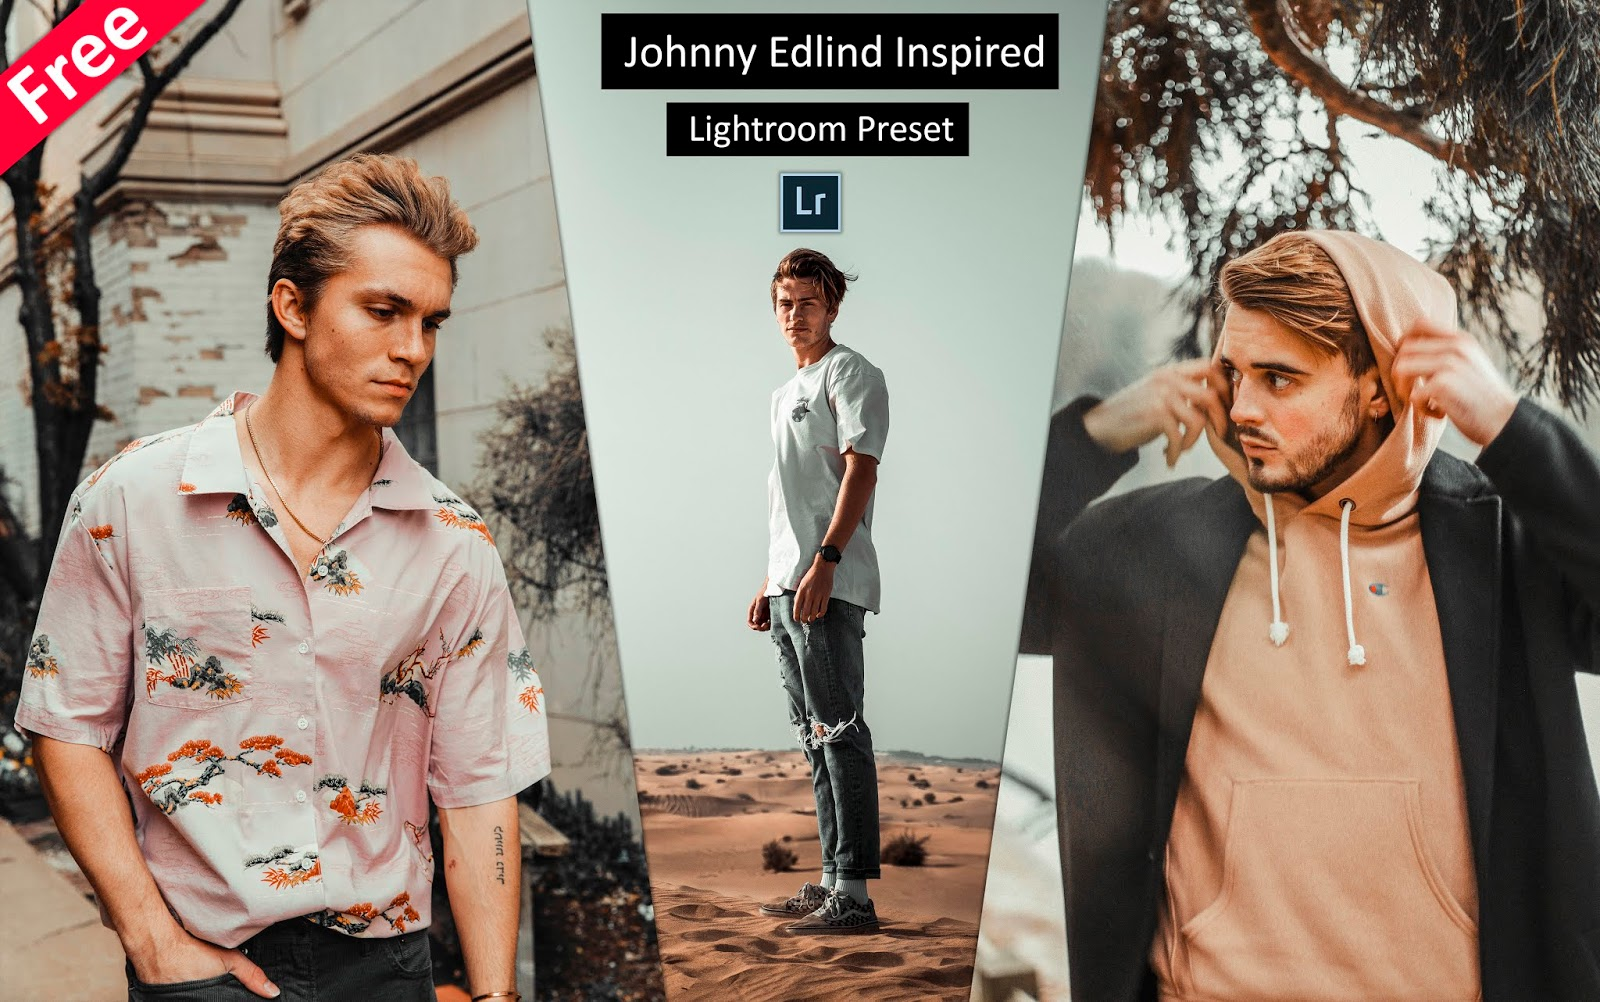 Download Johnny Edlind Inspired Lightroom Presets for Free | How to Edit Photos Like @johnnyedlind in Lightroom